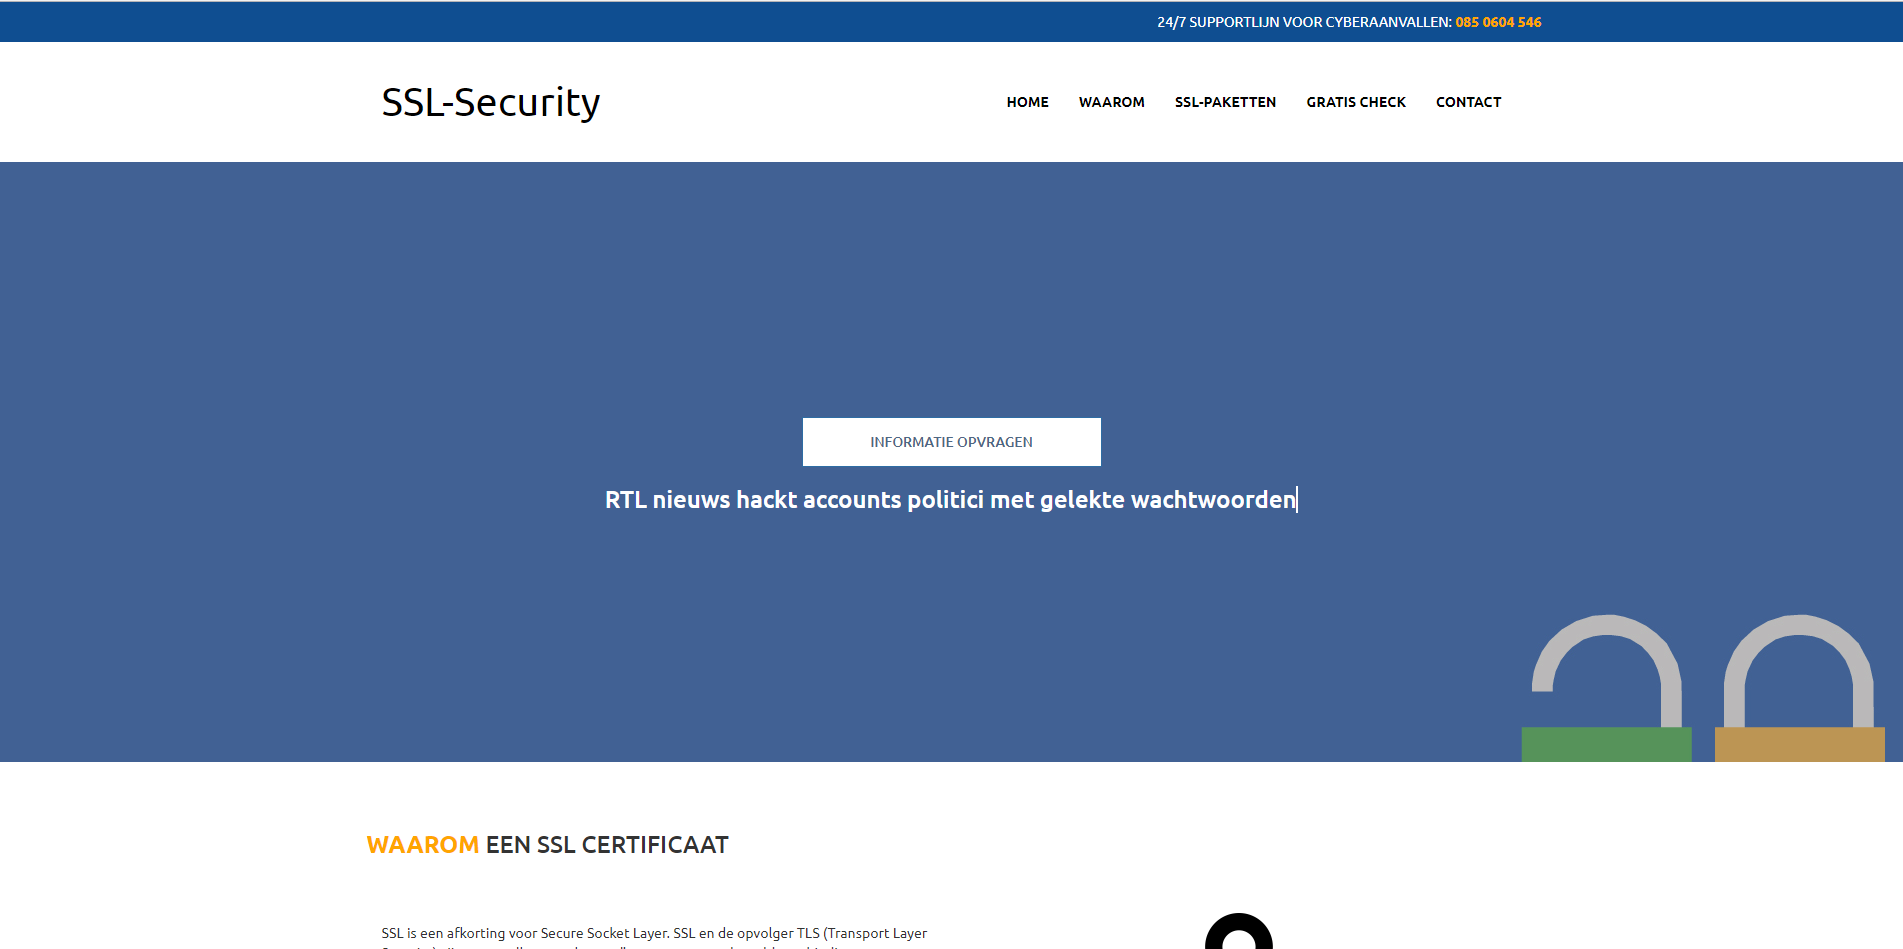 SSL-Security